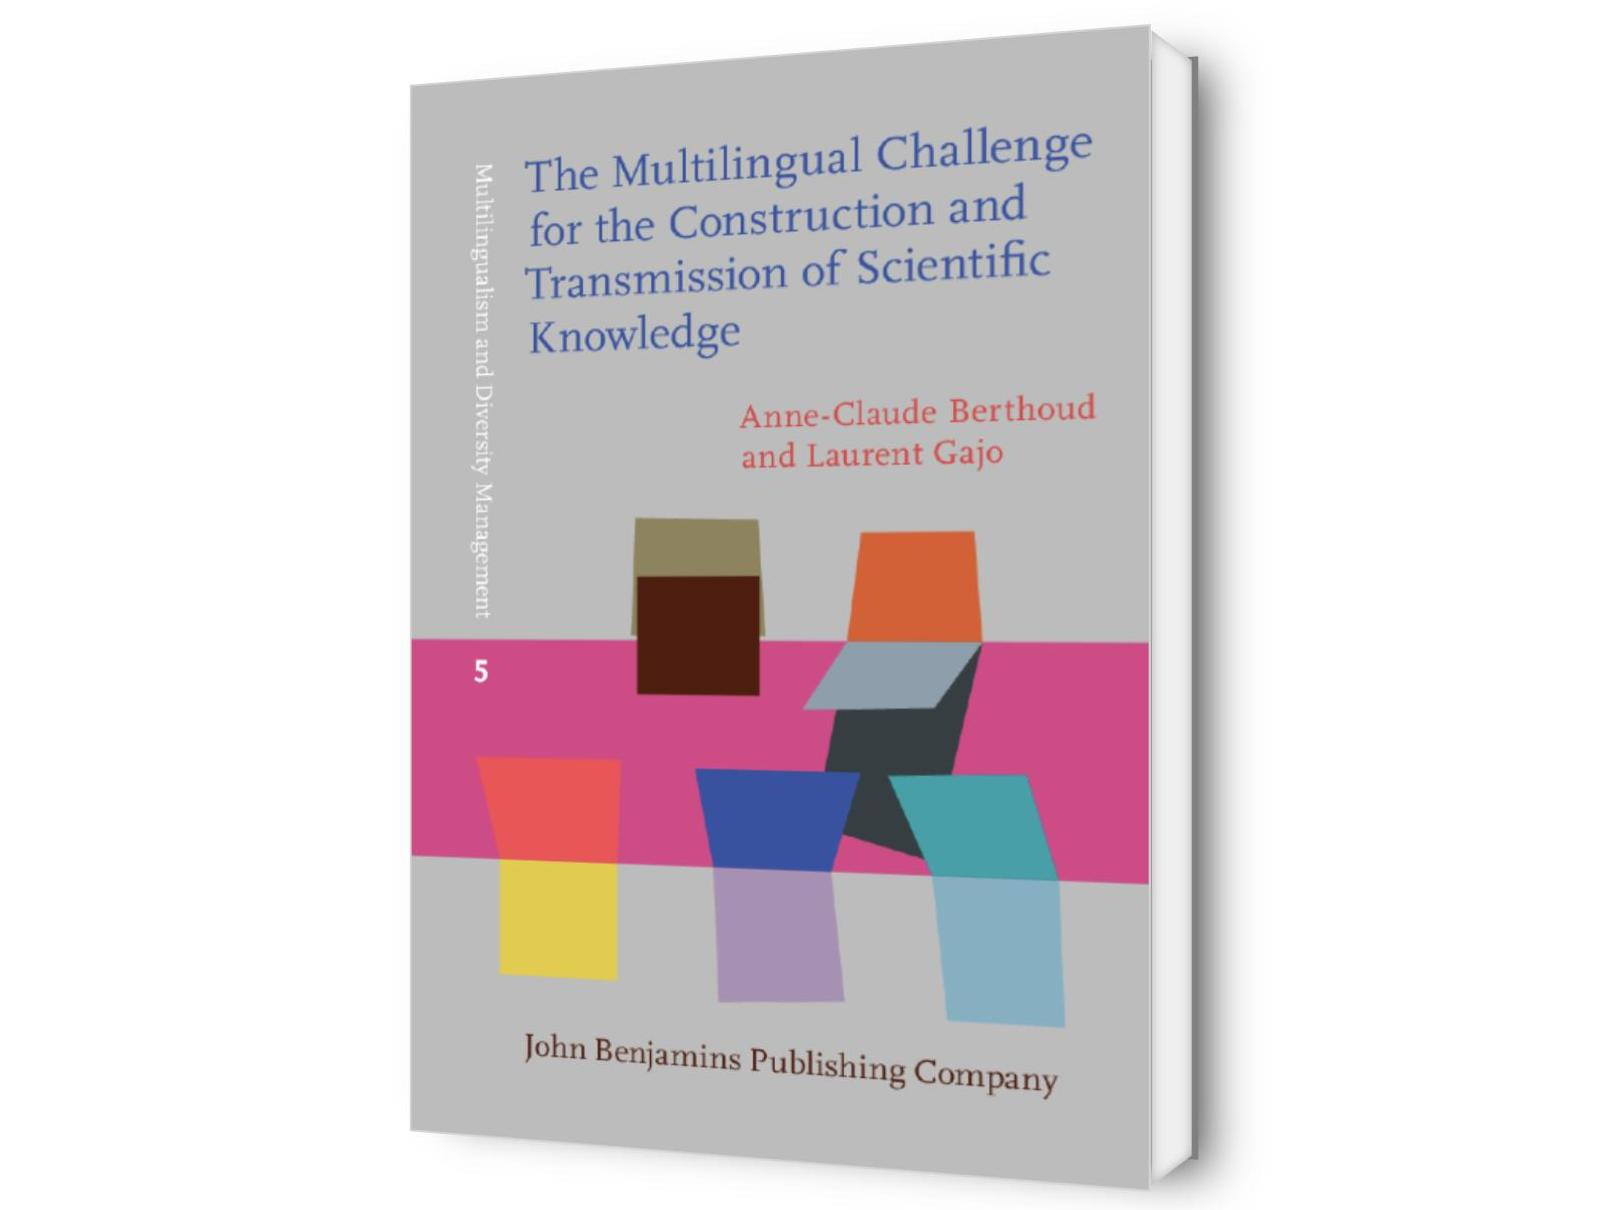 The Multilingual Challenge for the Construction and Transmission of Scientific Knowledge